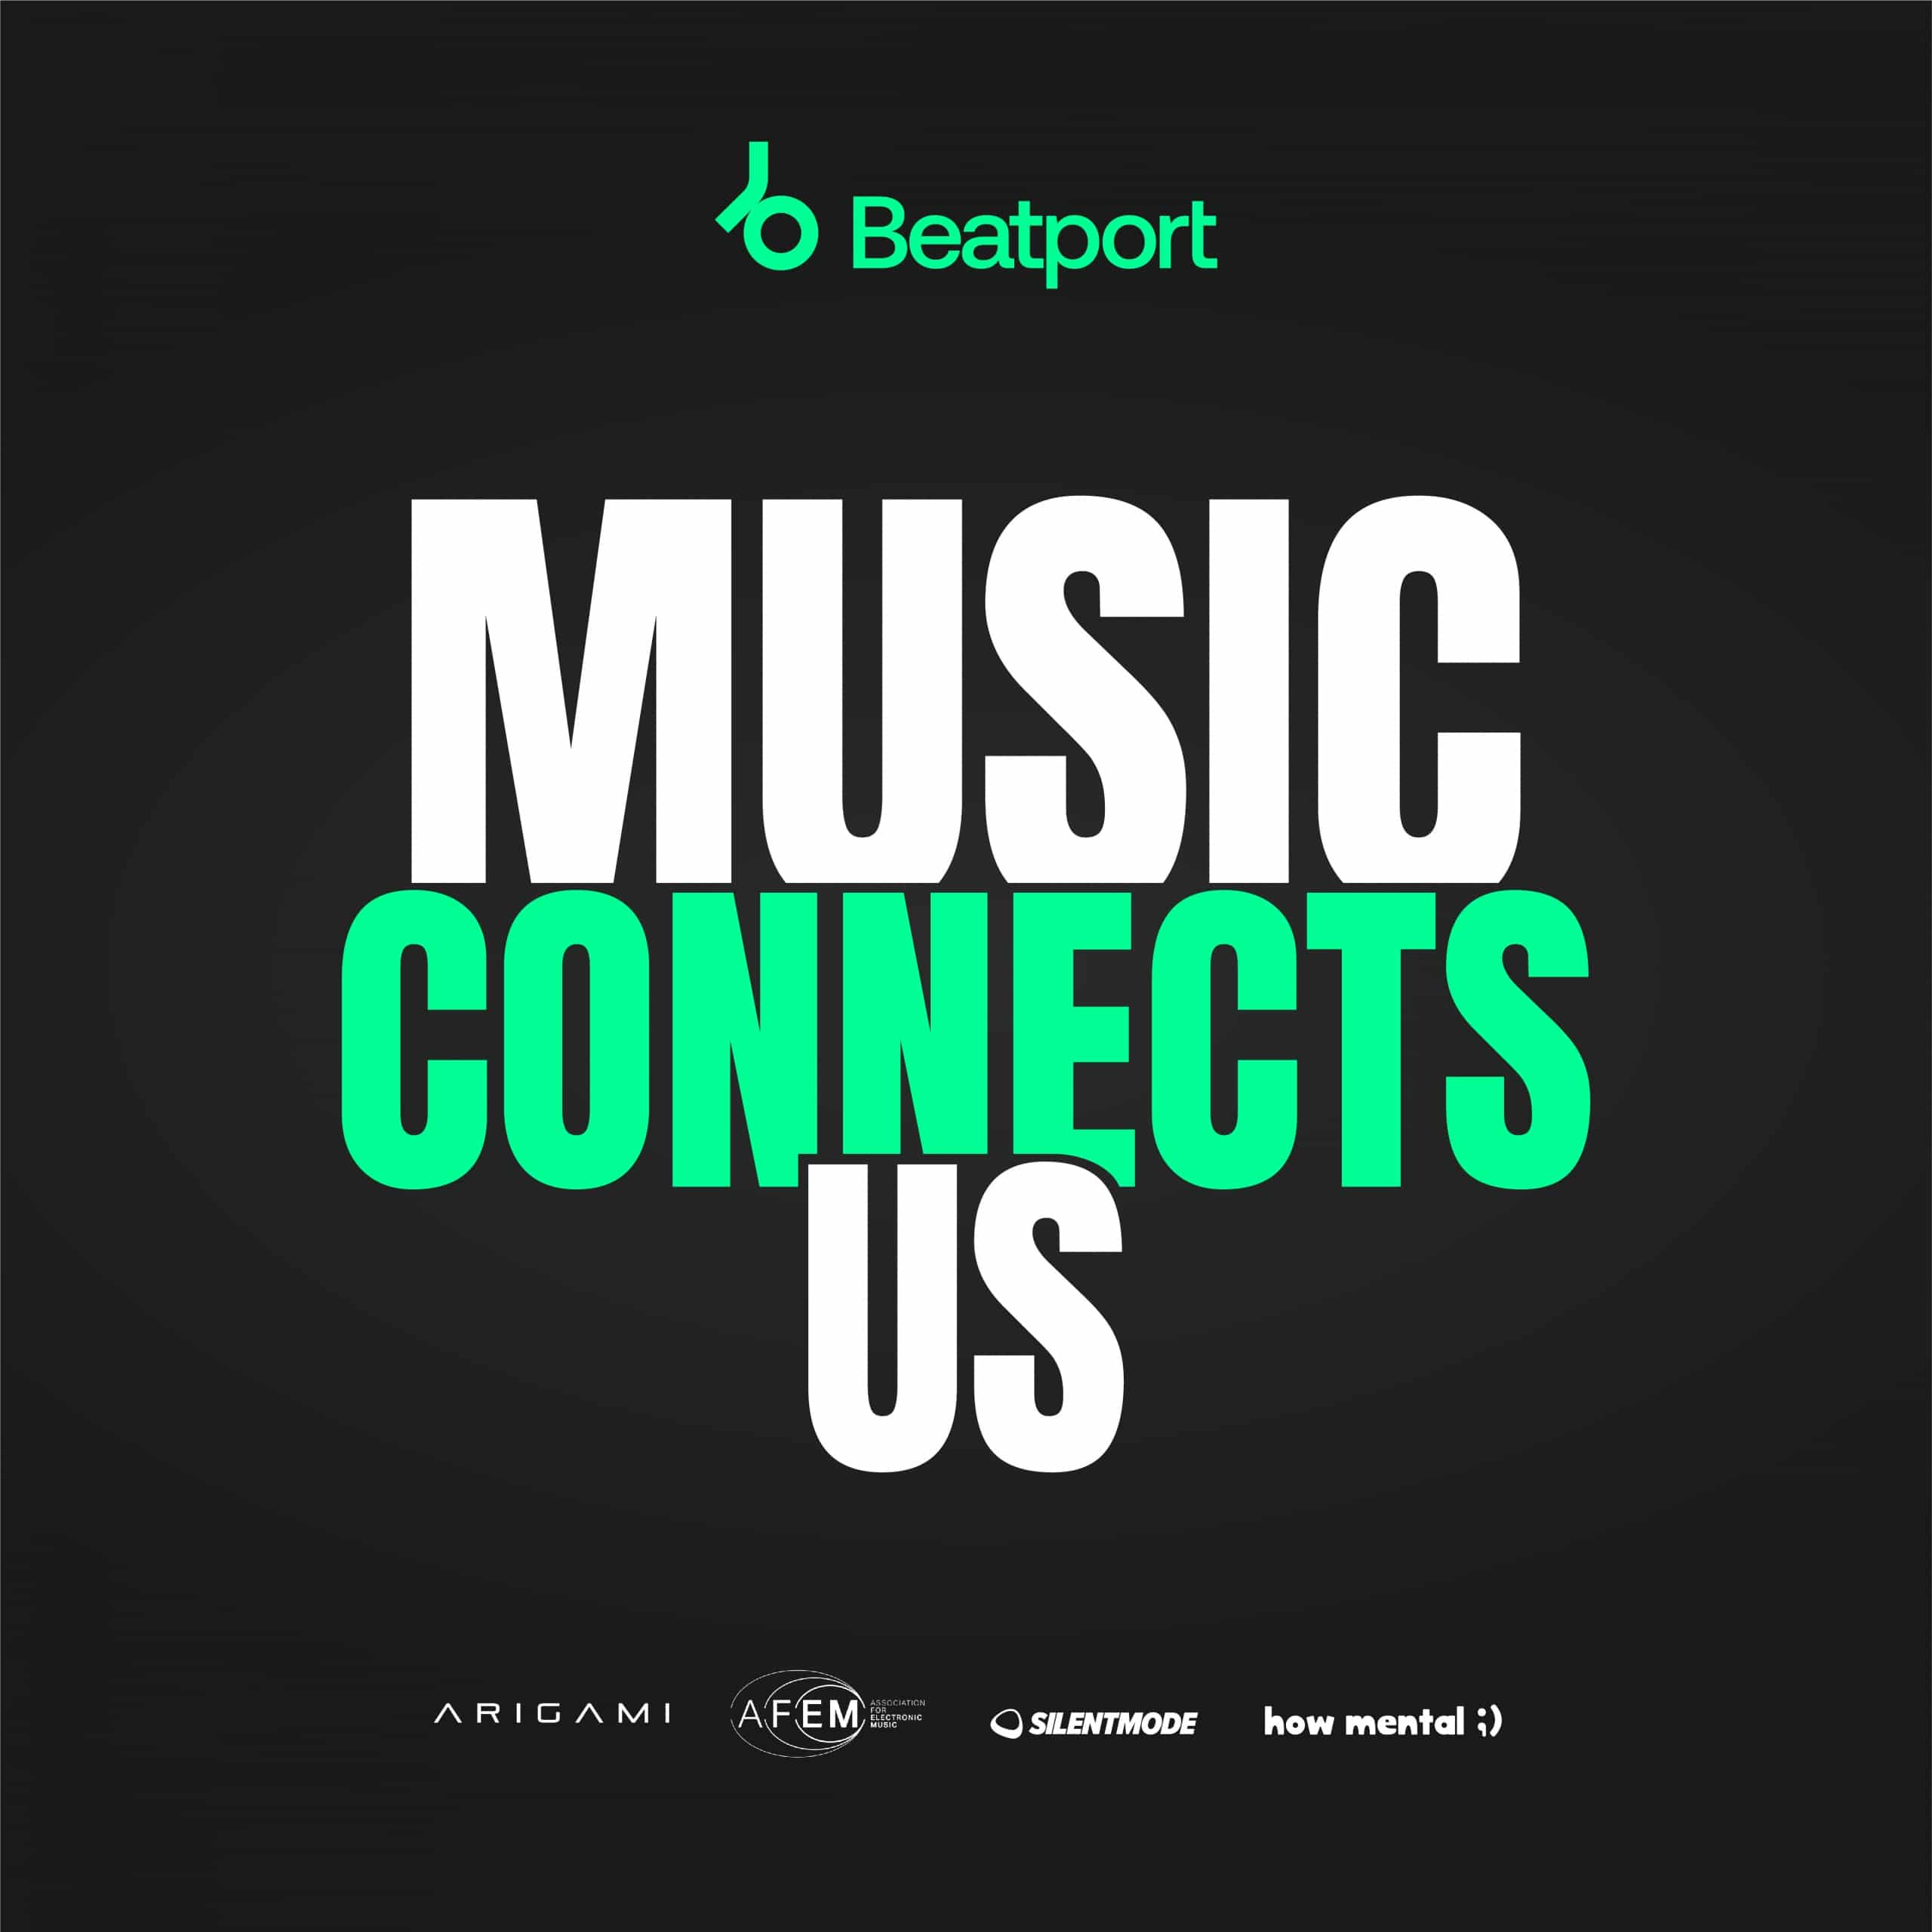 Beatport Launches Mental Health Initiative 'Music Connects Us'